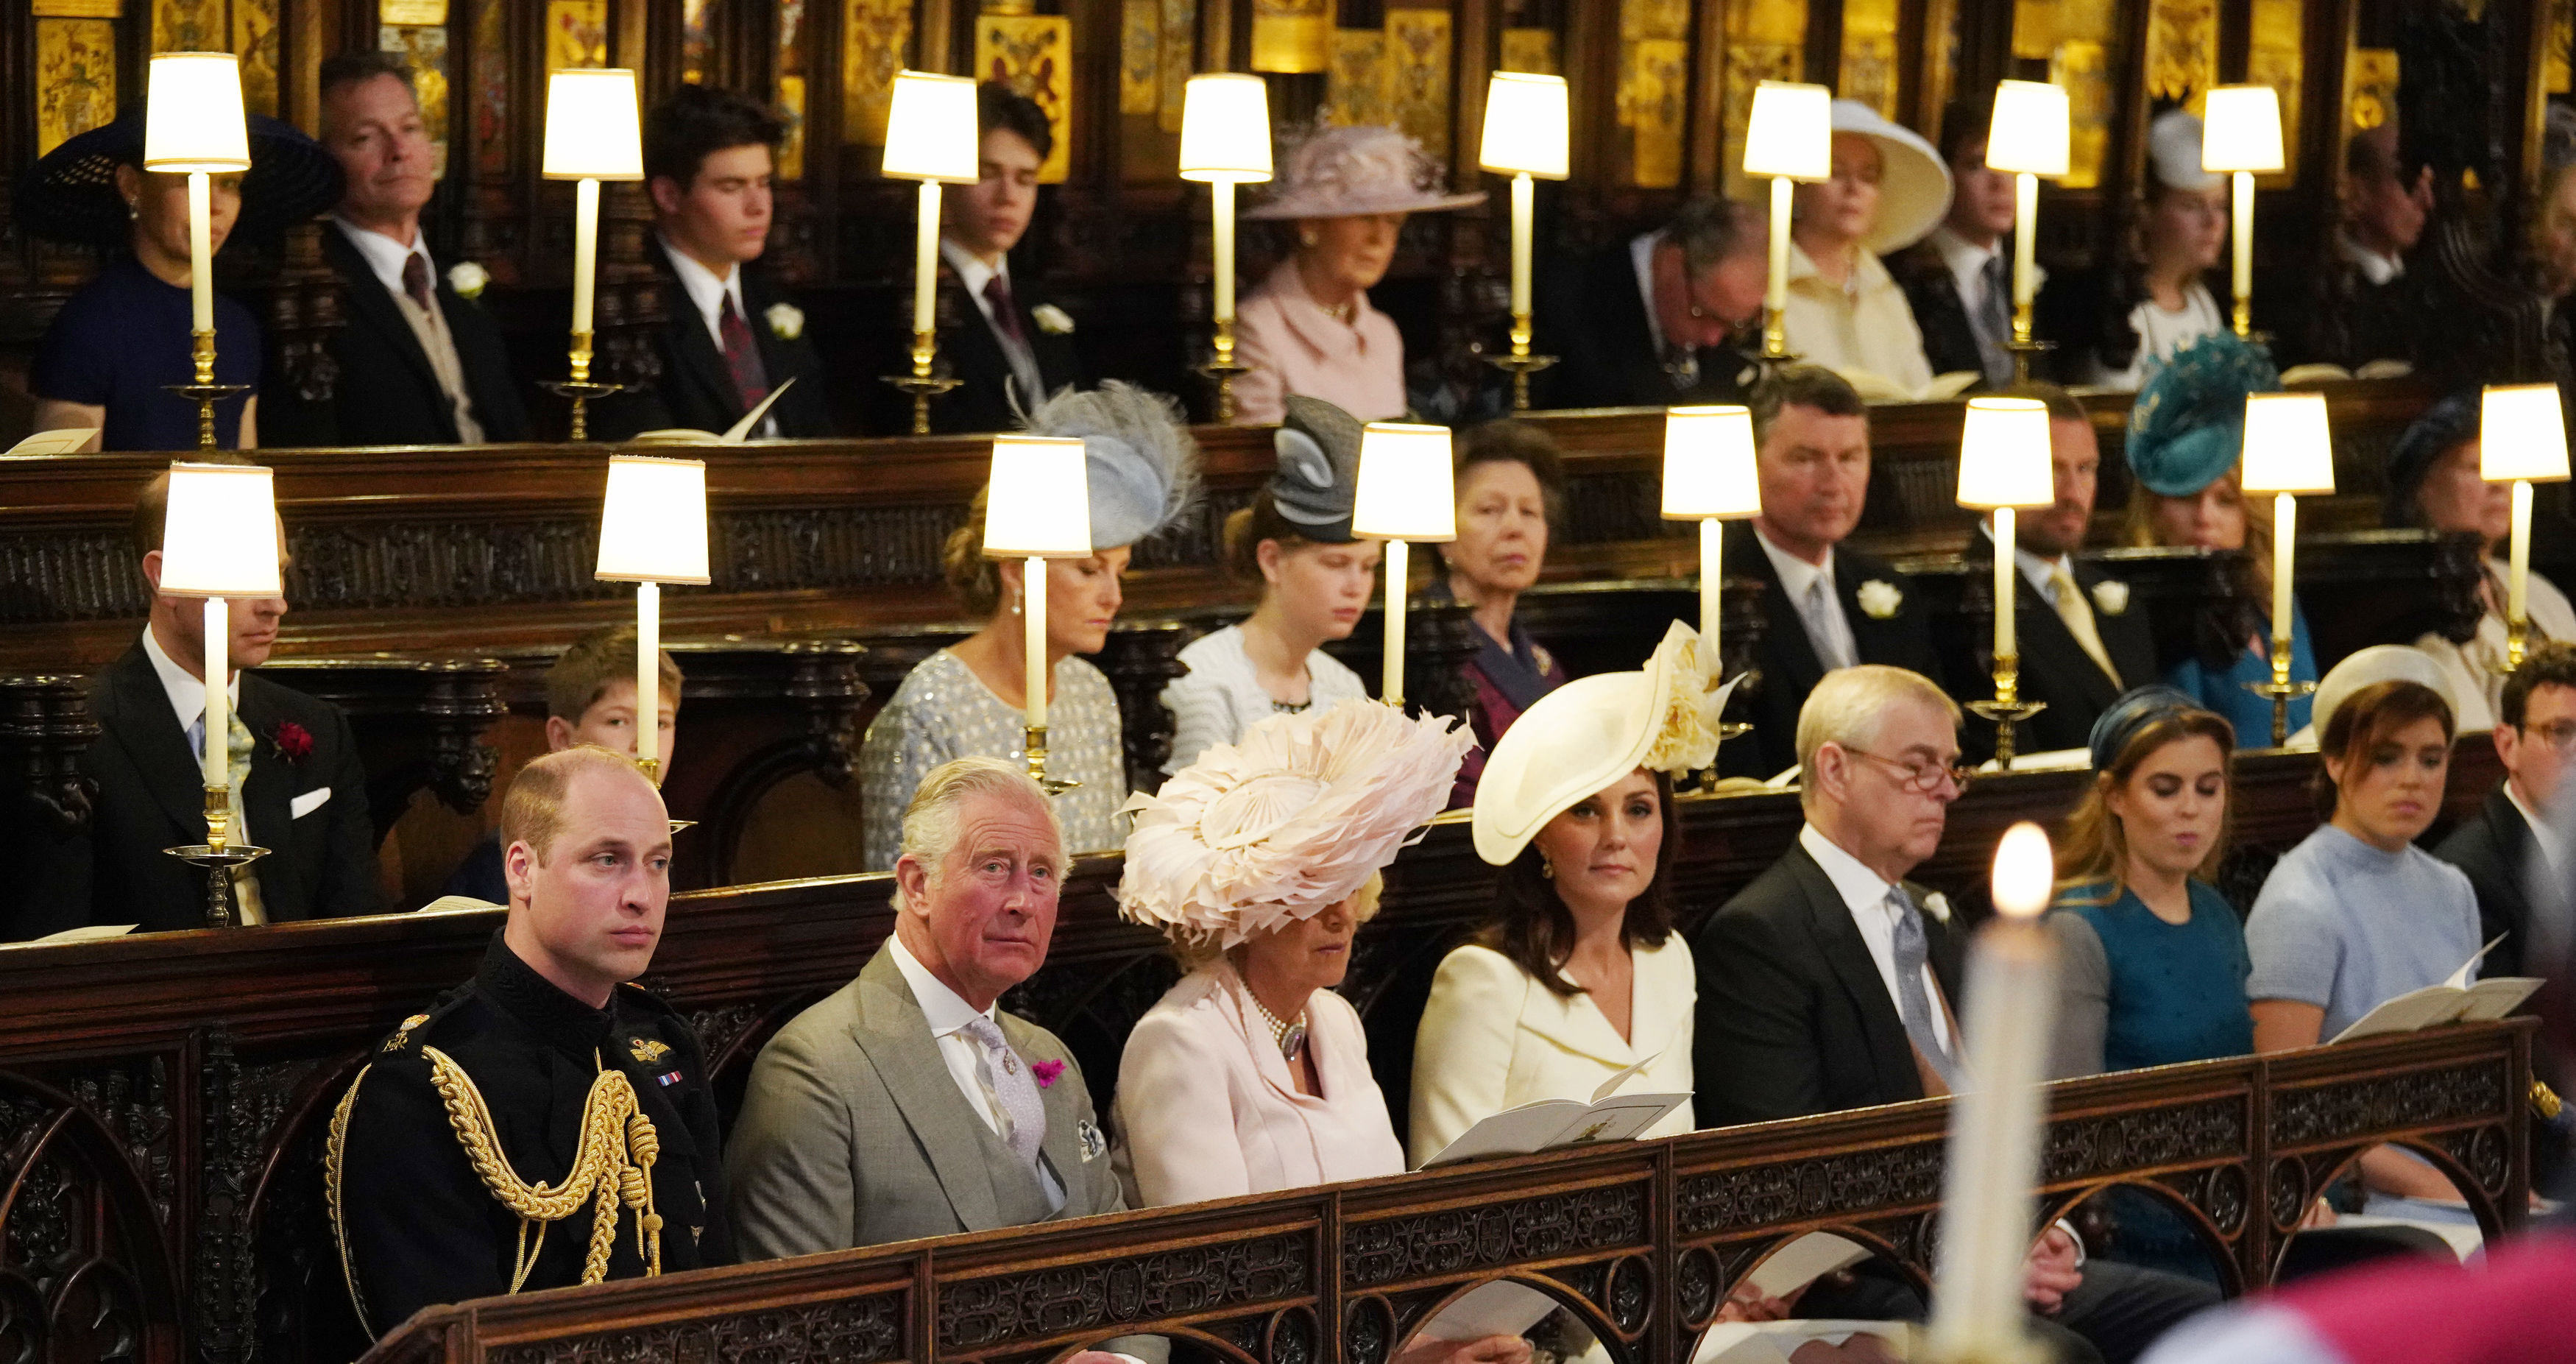 Royal Wedding Reverend Only Deviated Slightly From The Planned